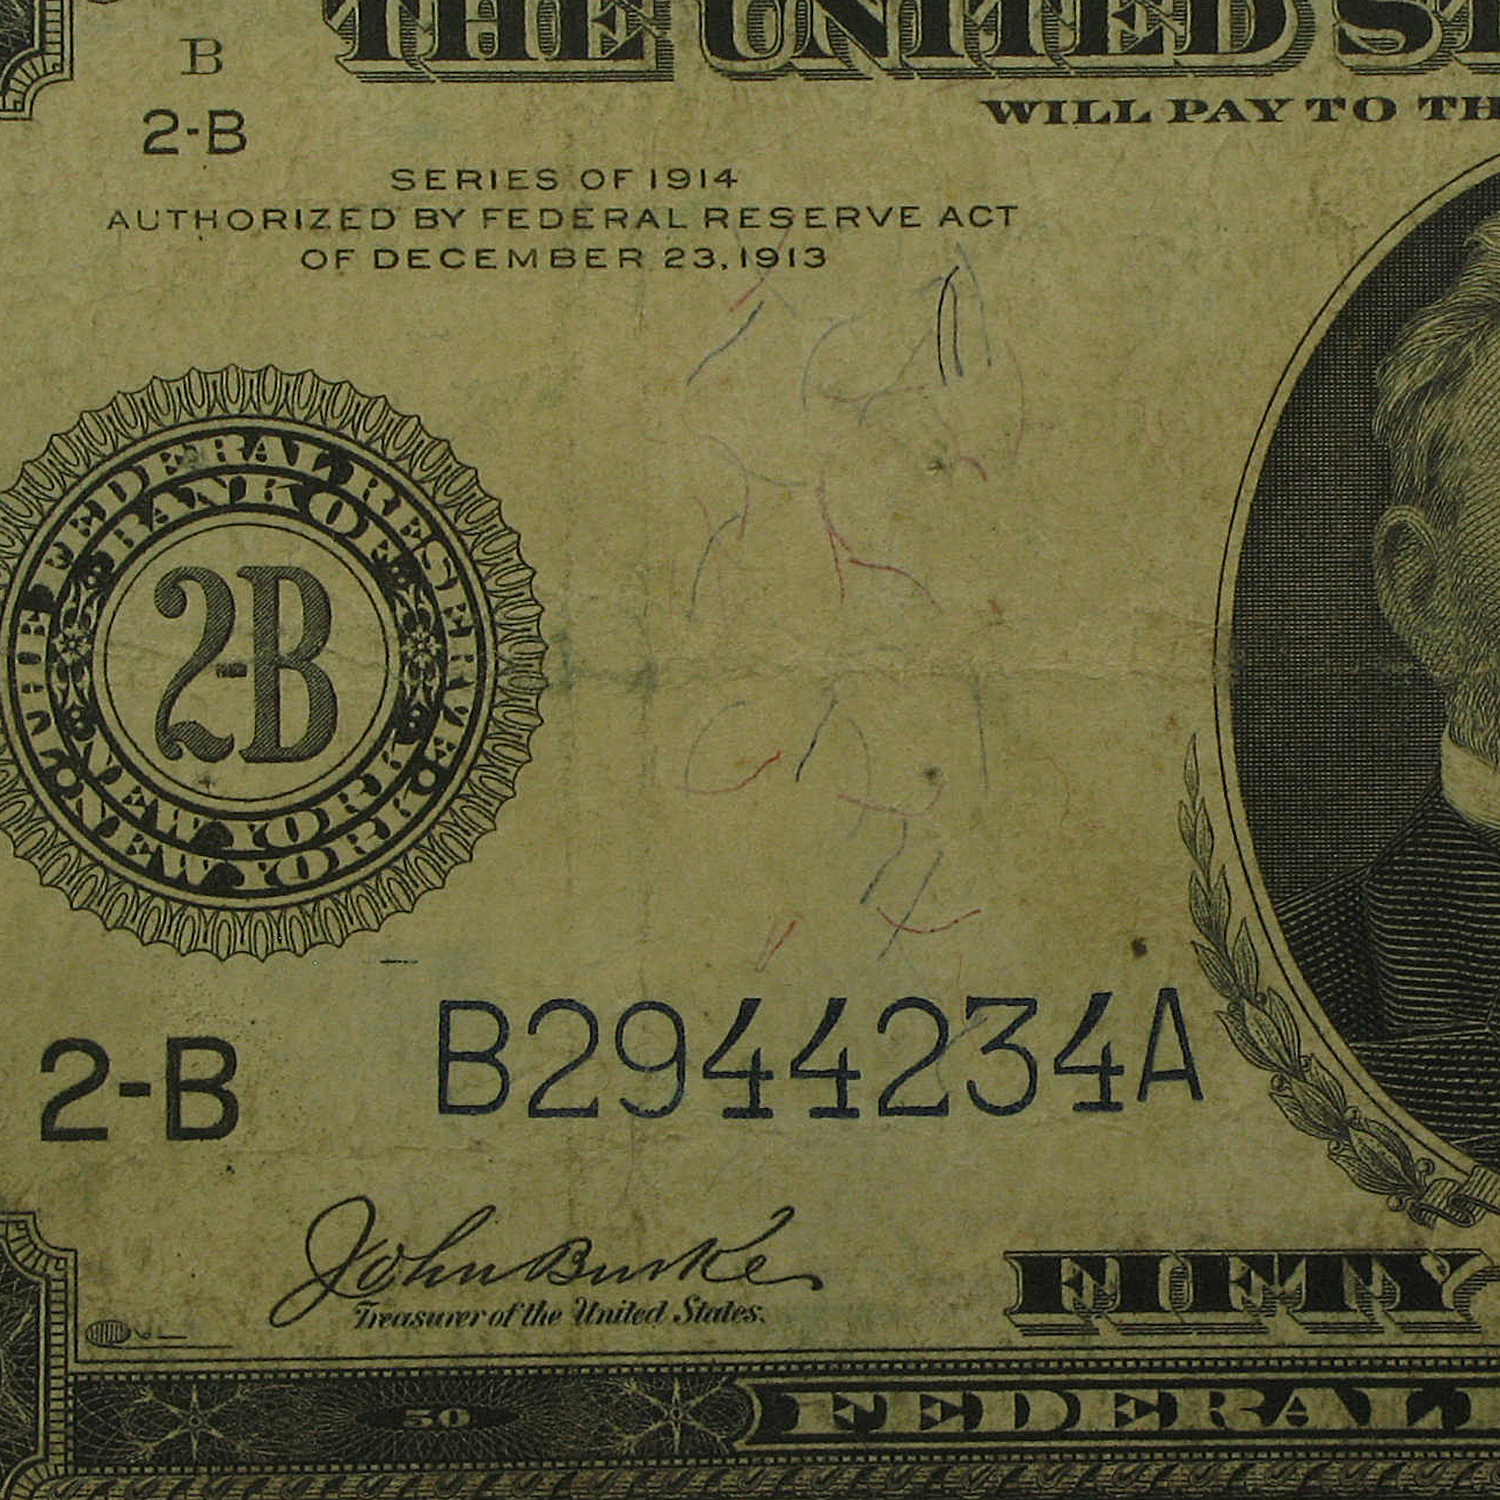 1914 (B-New York) $50 FRN Fine